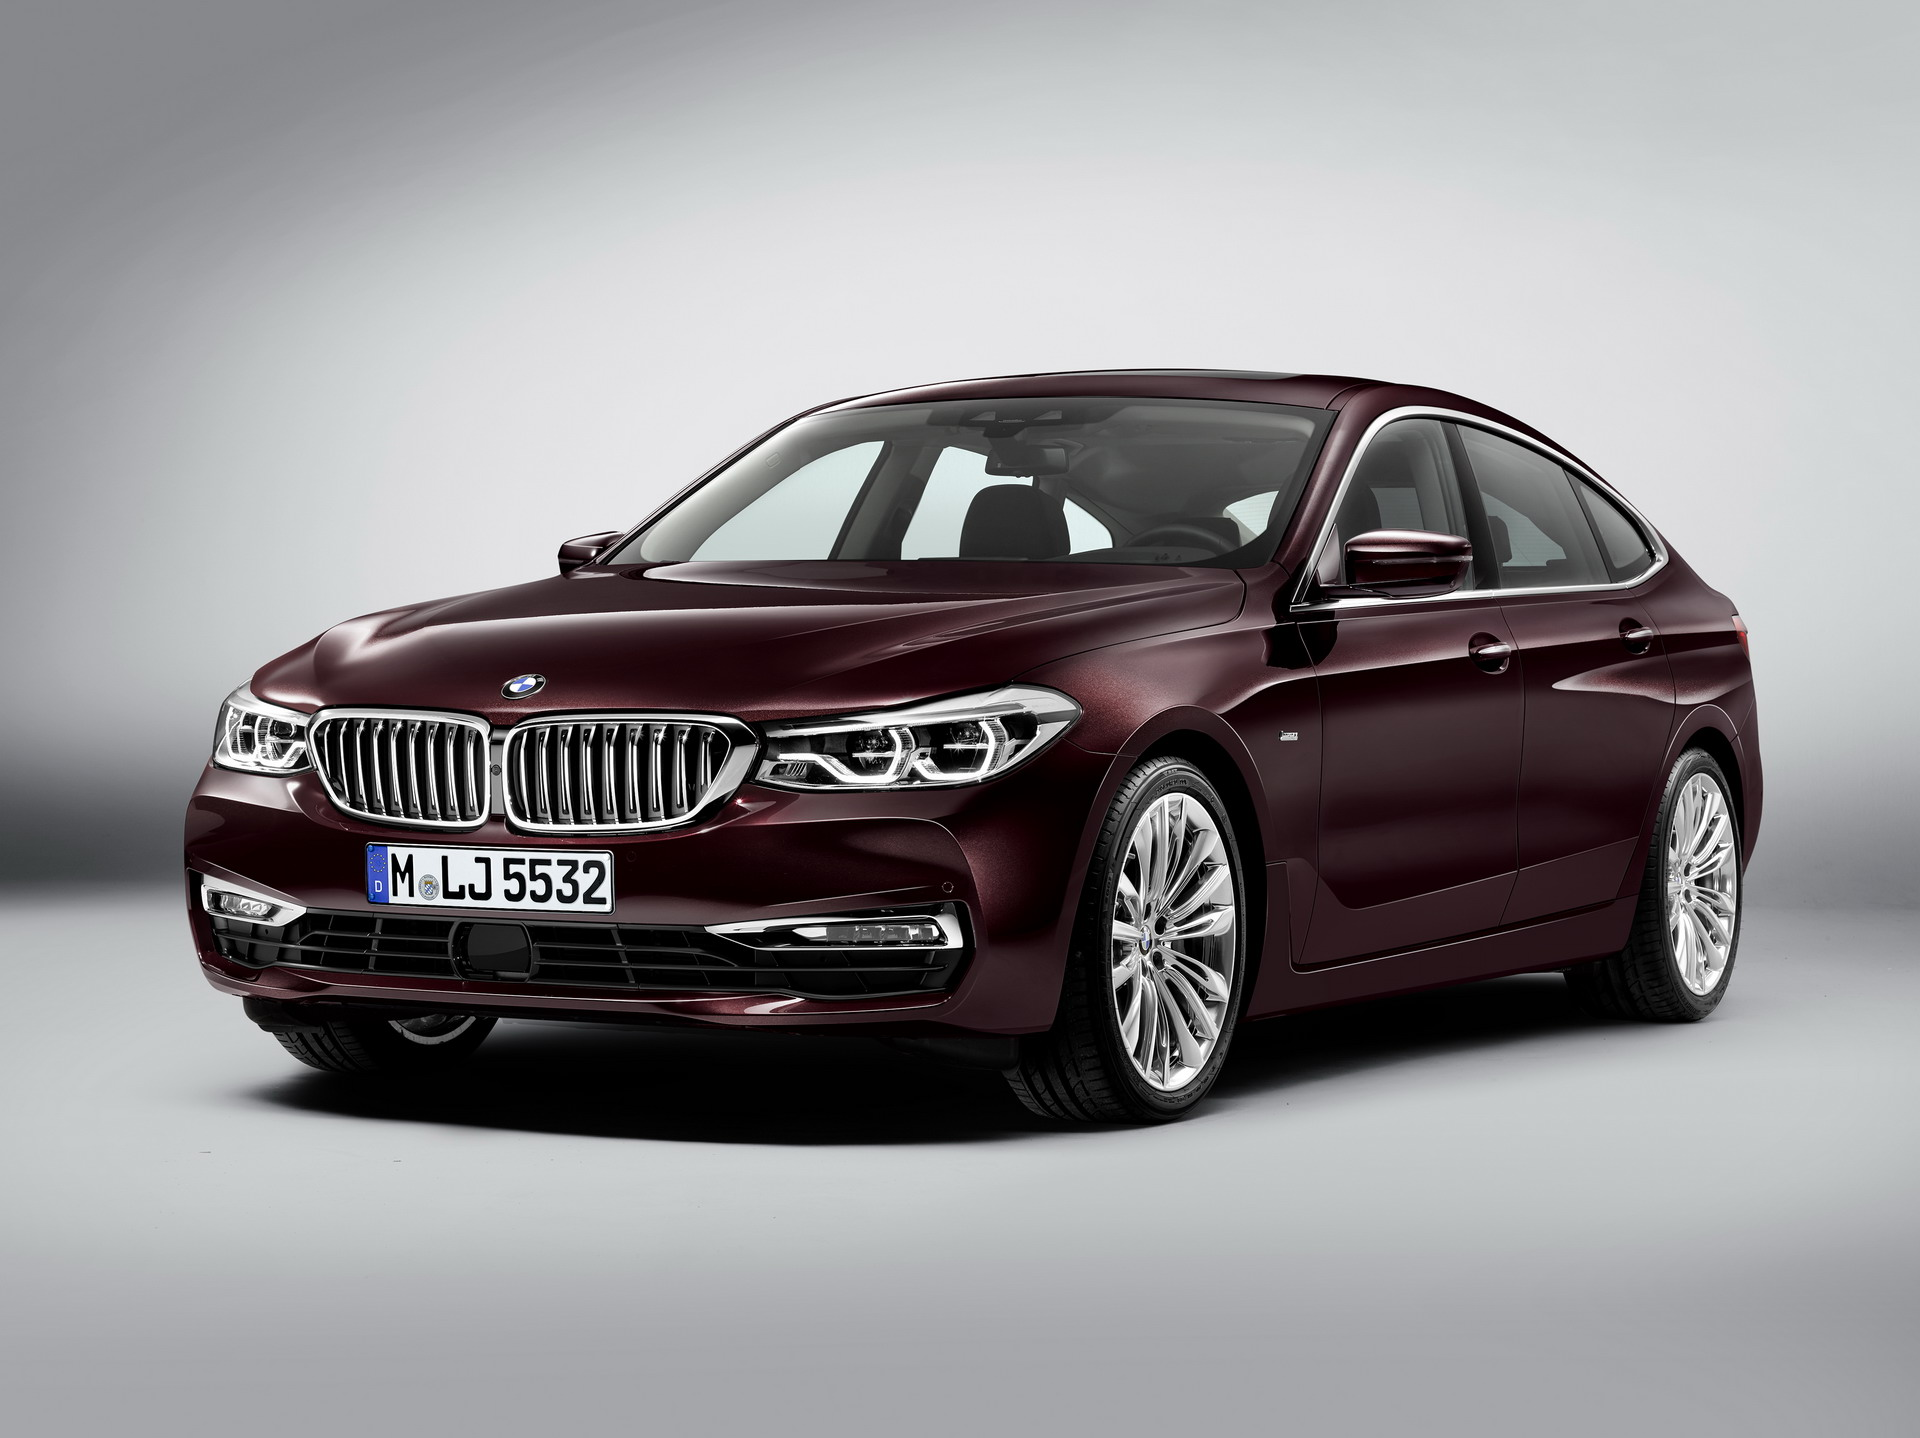 The New BMW 6 Series GT G32 2